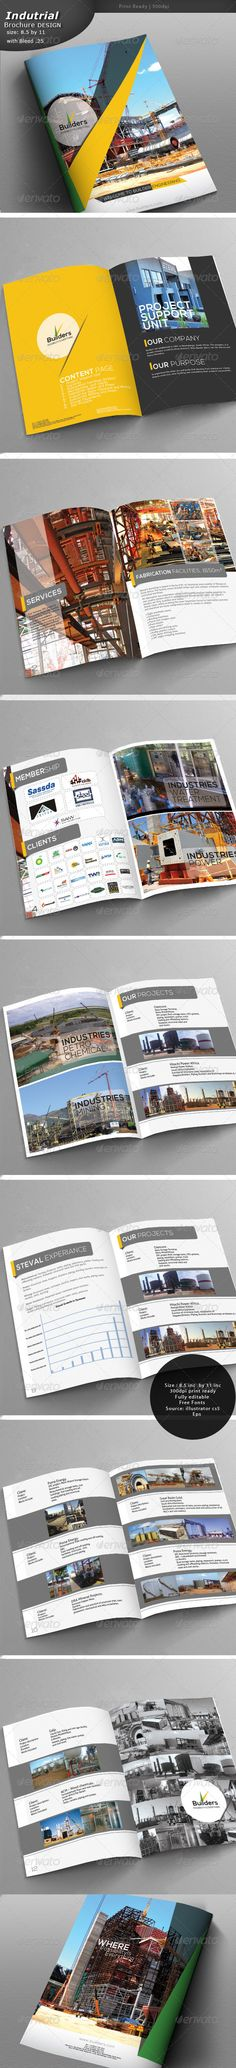 Construction Brochure #GraphicRiver Construction Brochure Design Fully editable in illustrator cs5. Source: Ai and Eps Size: 8.5 by 11 Bleed: .25 Images not included Pages: 14 Fonts Aller .fontsquirrel /fonts/Aller Nexa fontfabric /nexa-free-font/ Created: 31May13 GraphicsFilesIncluded: VectorEPS #AIIllustrator Layered: No MinimumAdobeCSVersion: CS5 PrintDimensions: 8.5x11 Tags: architectbrochure #buildingbrochure #constructionbrochure #industrialbrochure